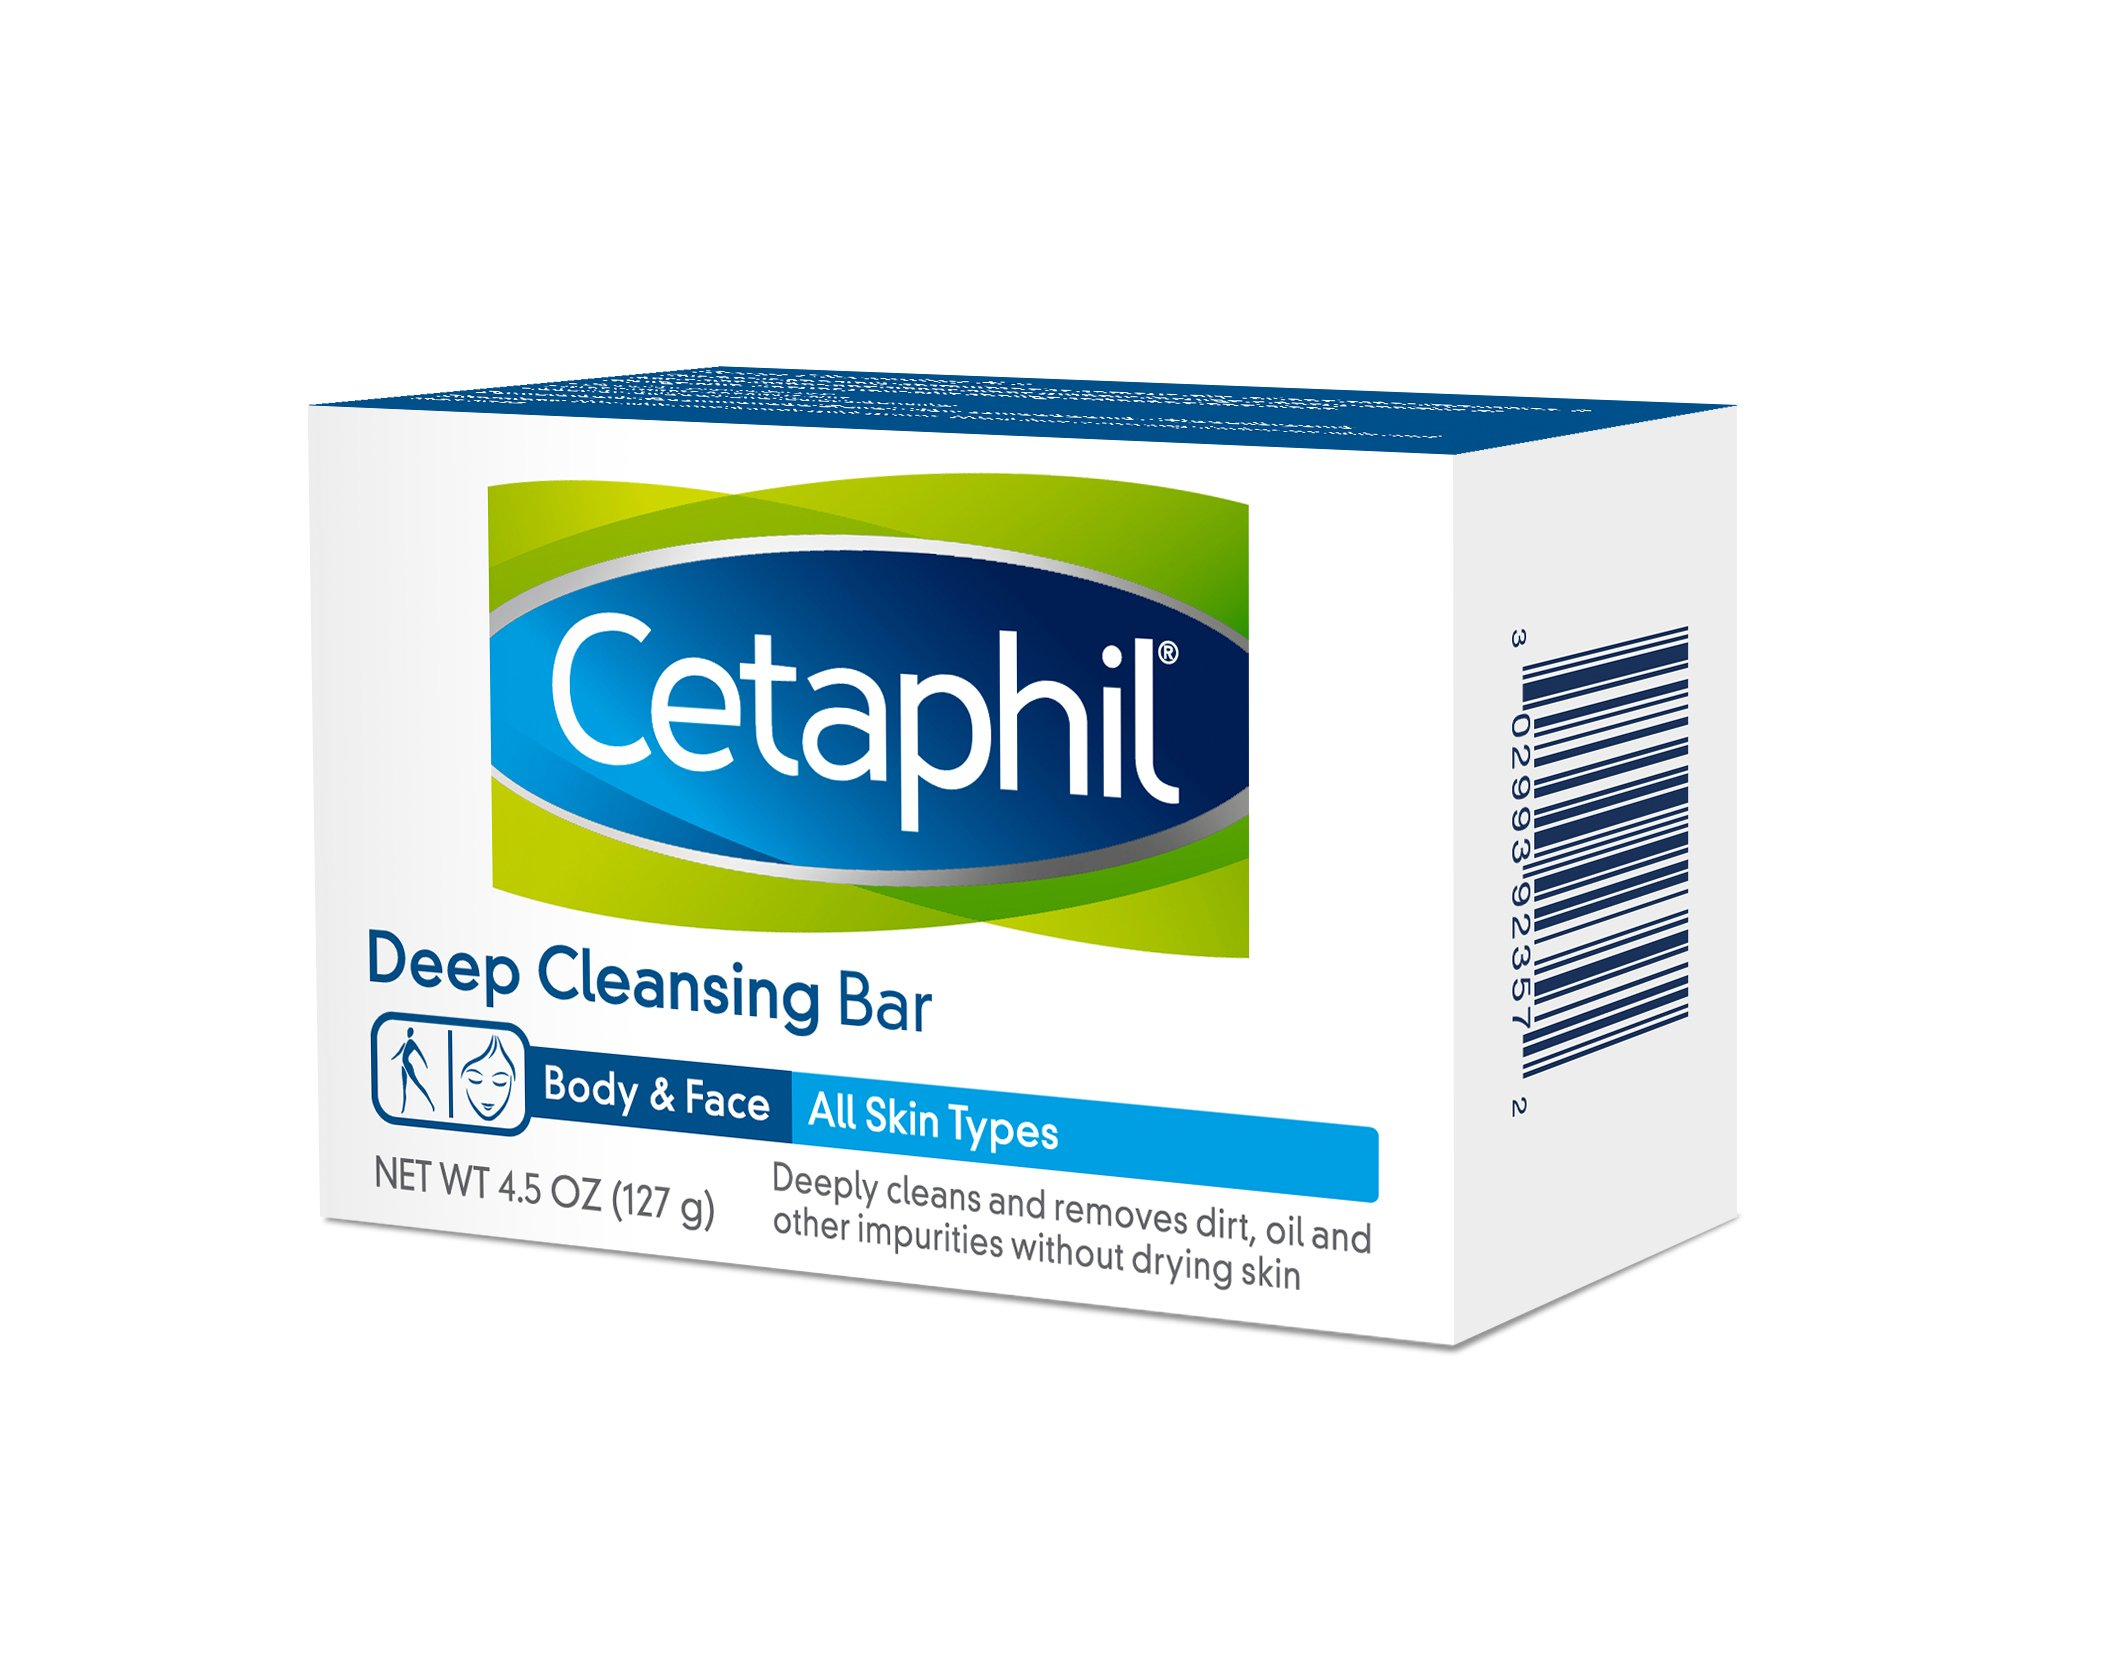 Cetaphil Deep Cleansing Face & Body Bar for All Skin Types , 6 Count